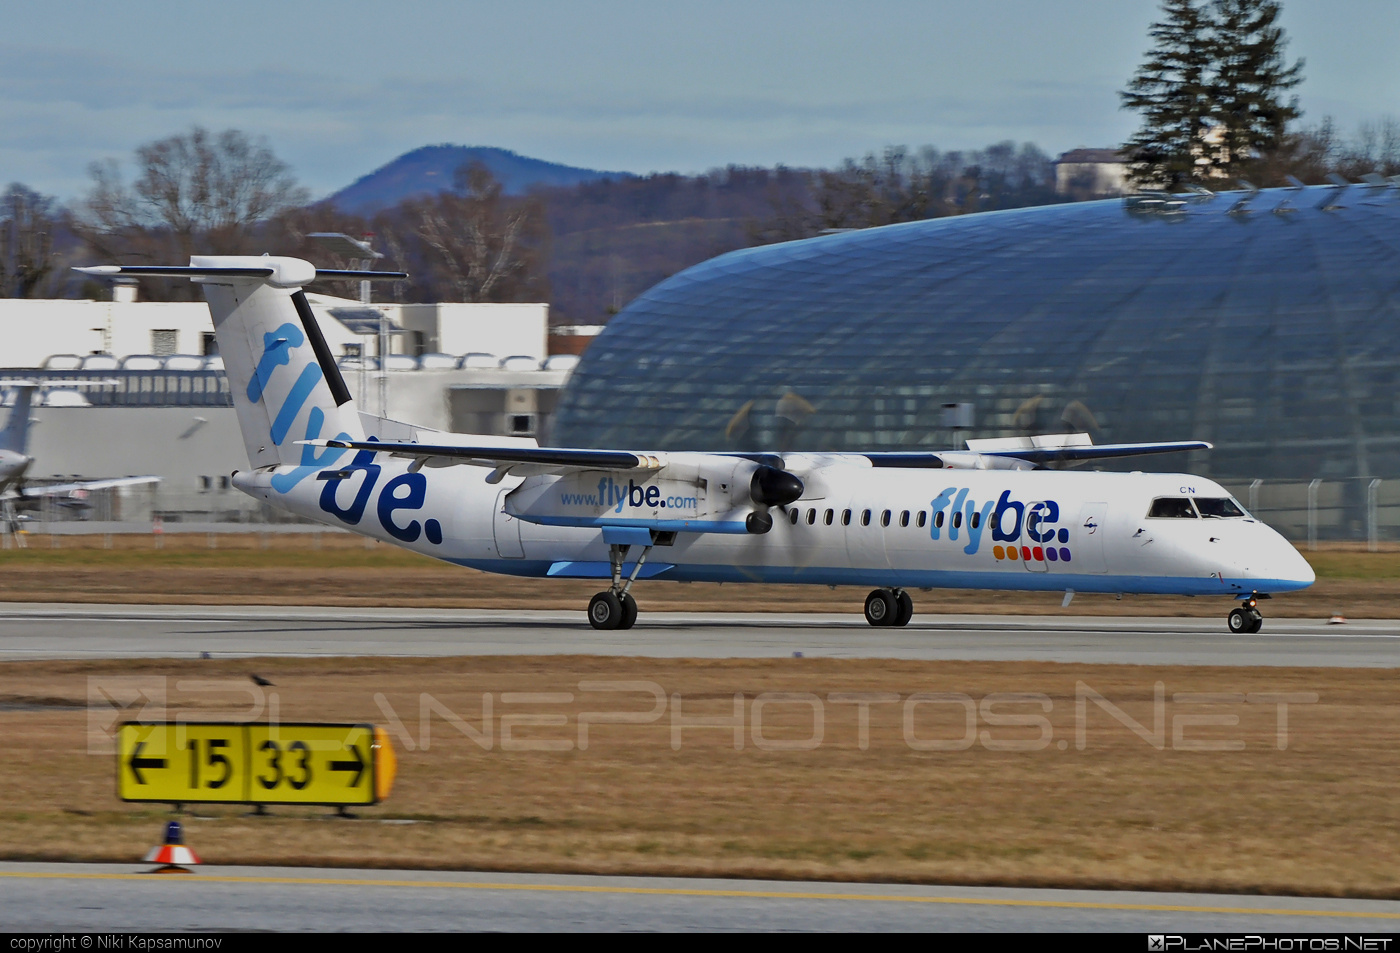 Bombardier DHC-8-Q402 Dash 8 - G-JECN operated by Flybe #bombardier #dash8 #dhc8 #dhc8q402